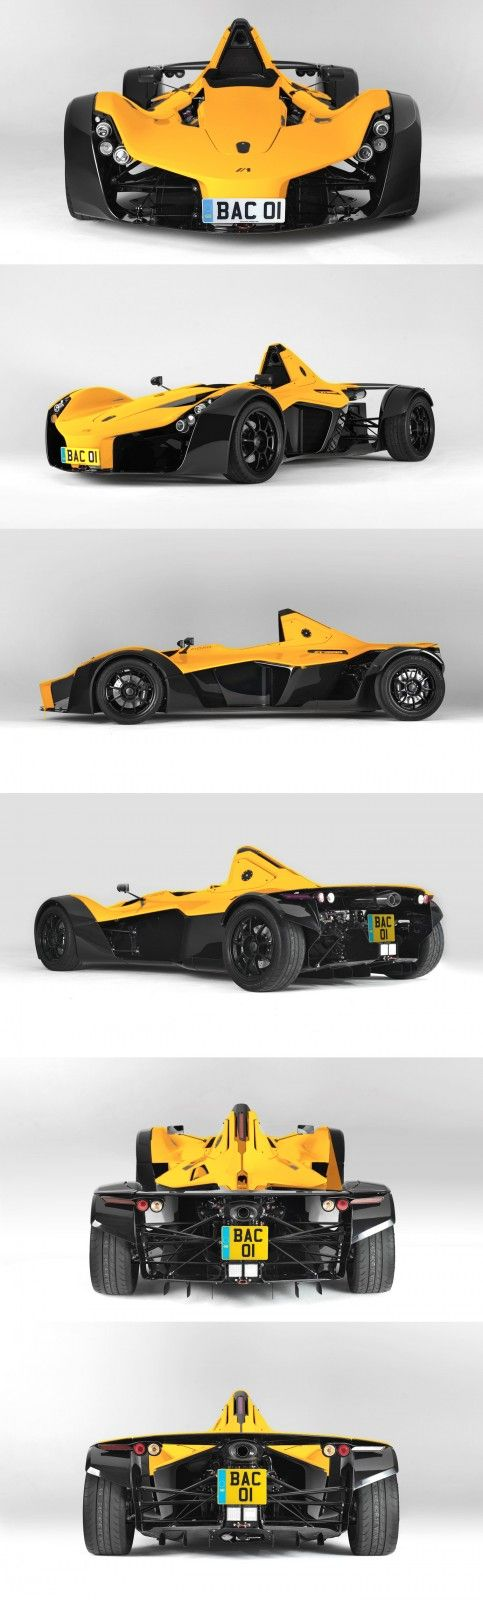 http://www.car-revs-daily.com/2015/08/11/2016-bac-mono-digital-color-visualizer-tallpapers/